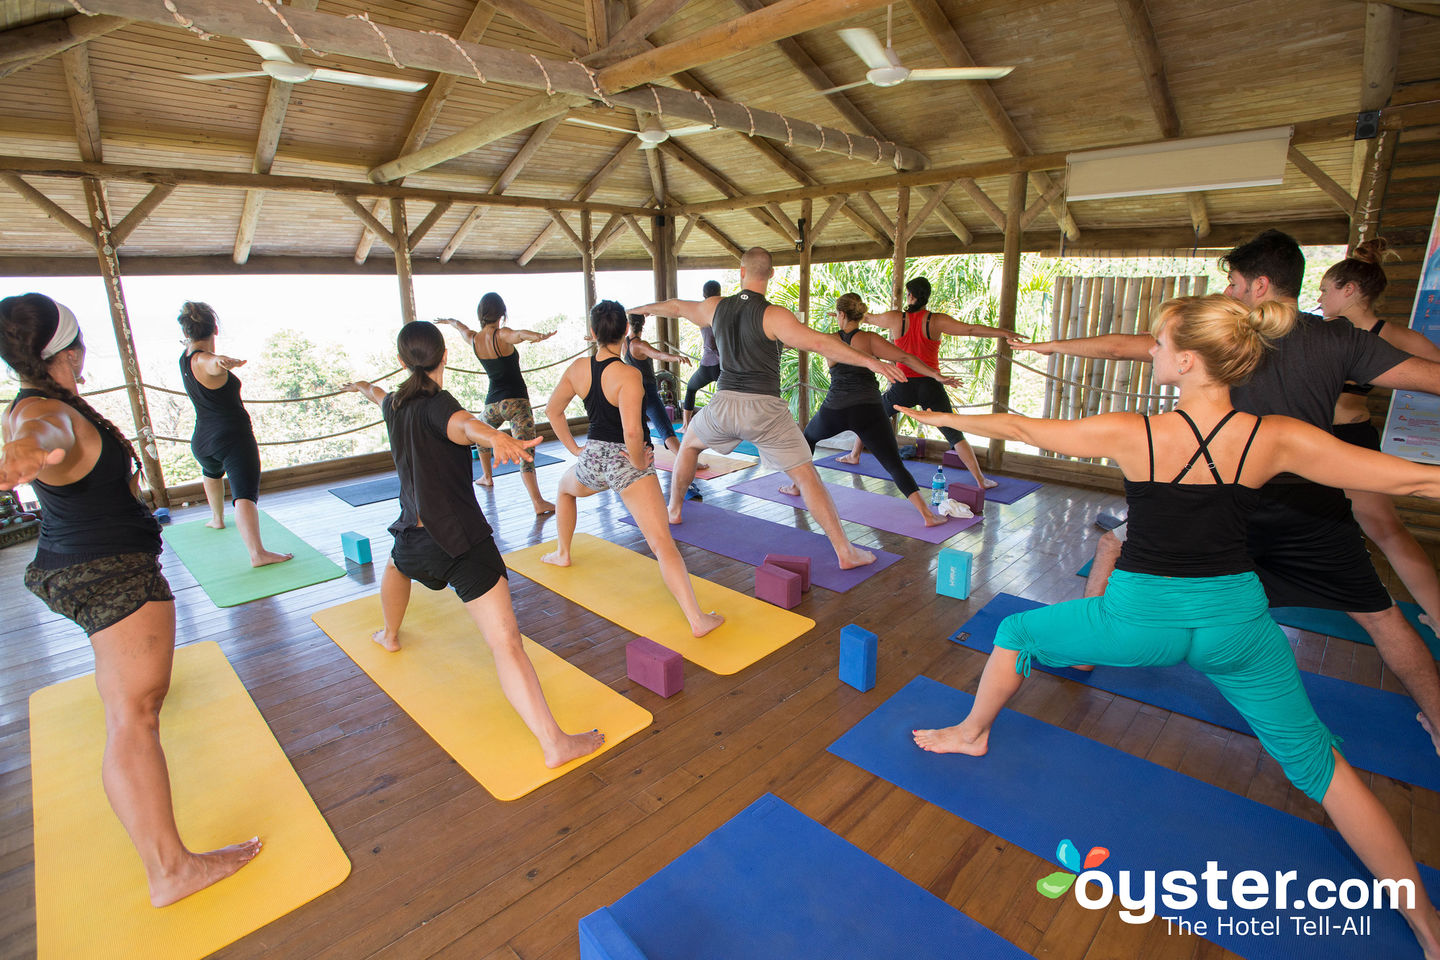 Yoga Deck at the Horizon Ocean View Hotel and Yoga Center in Costa Rica